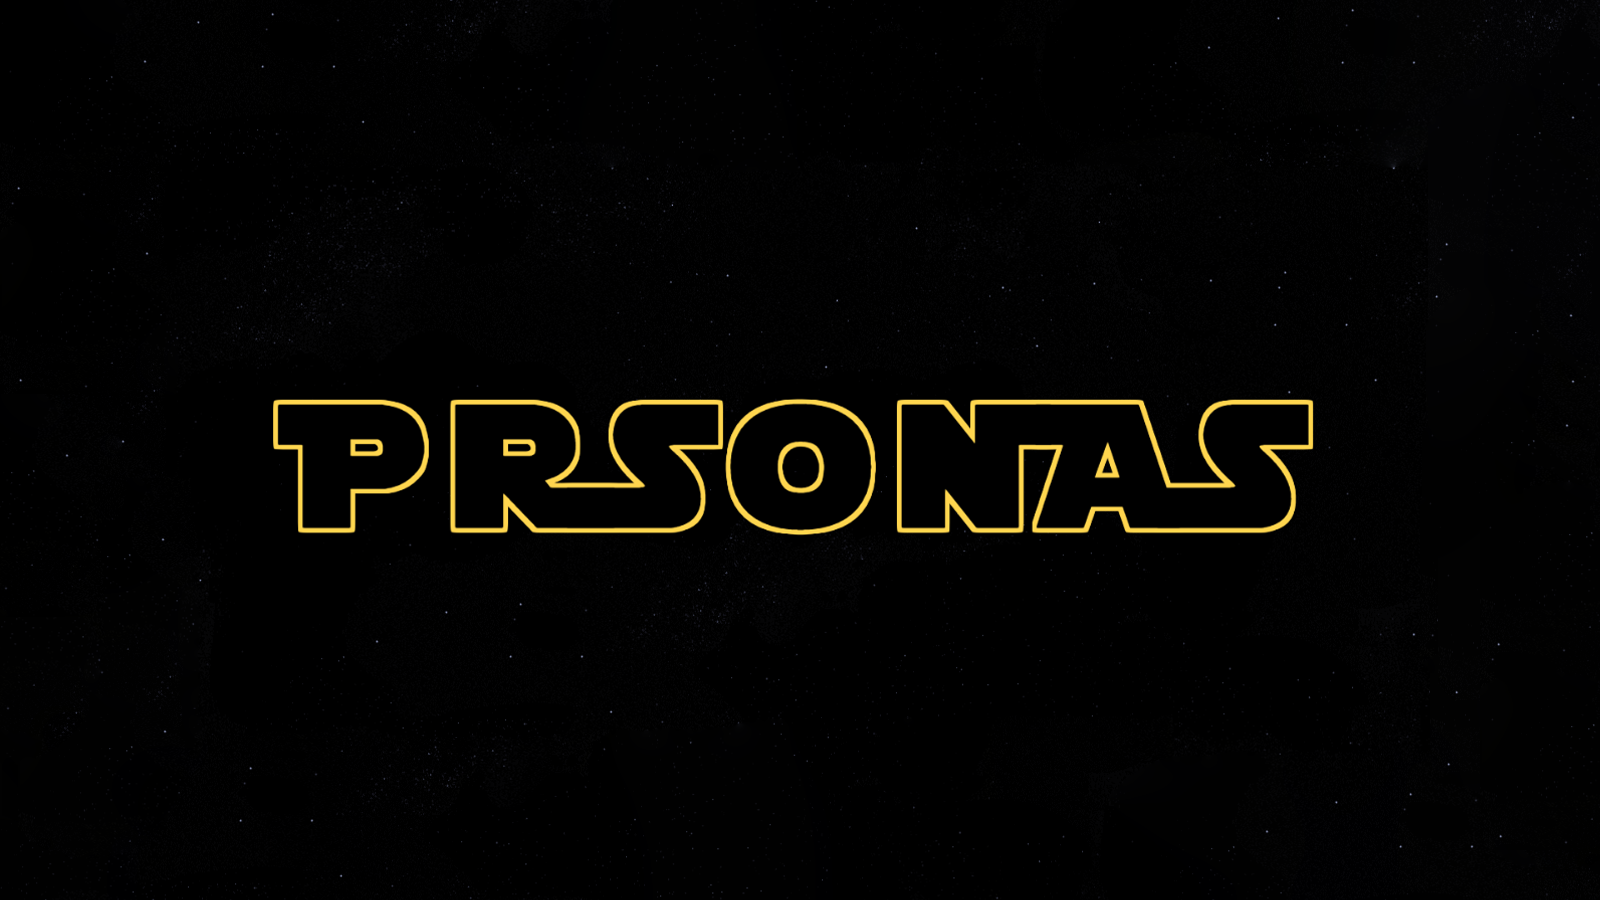 logo that says prsonas but it is written in star wars intro text